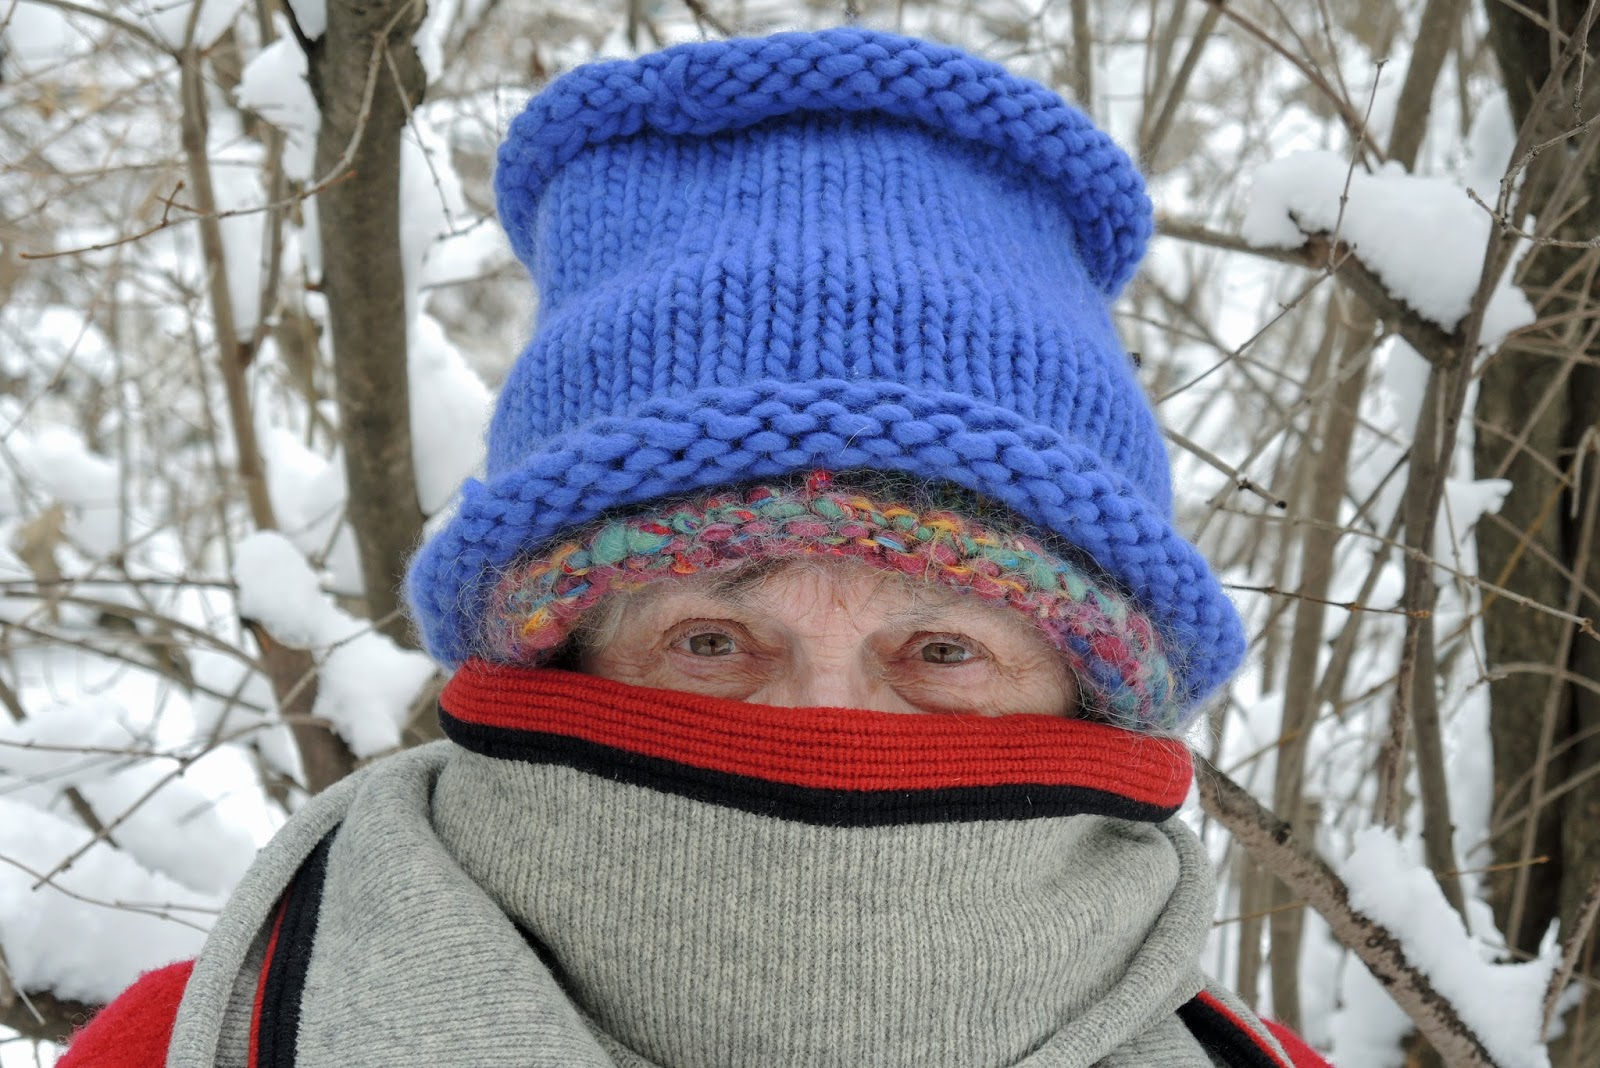 Knitting Scarves For The Homeless : Hats for the homeless knitting giving loving january